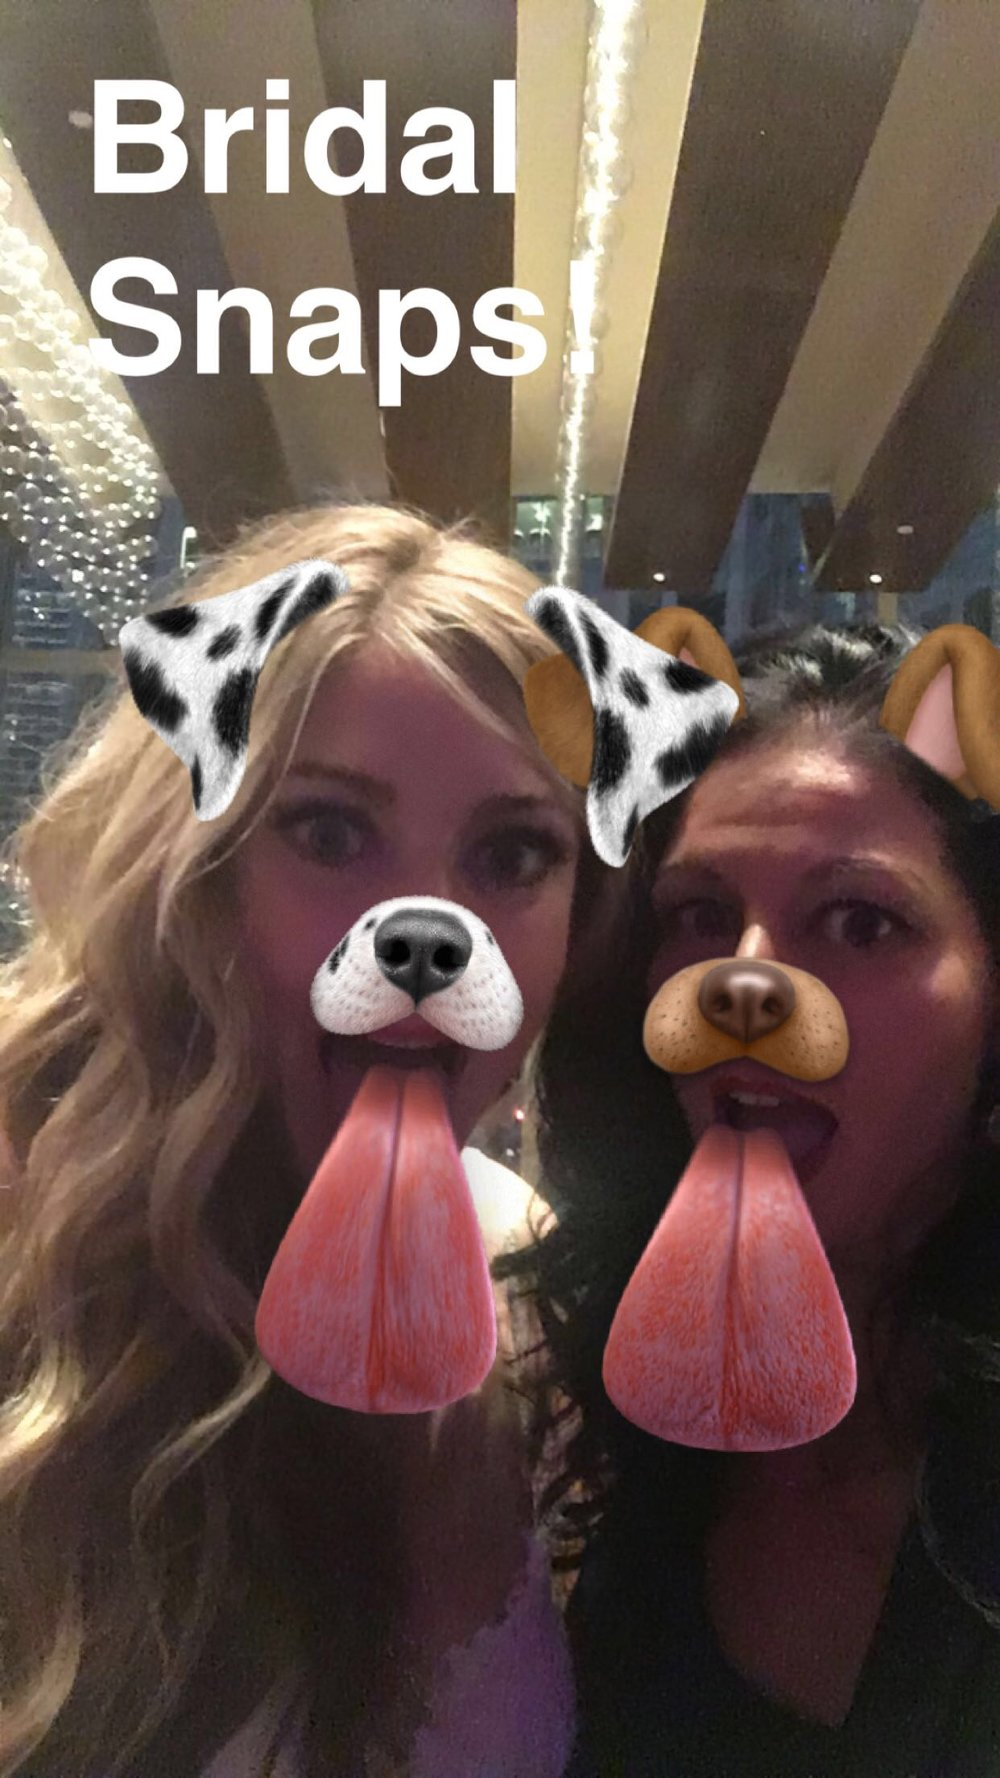 Wedding planner and bride playing on snapchat.